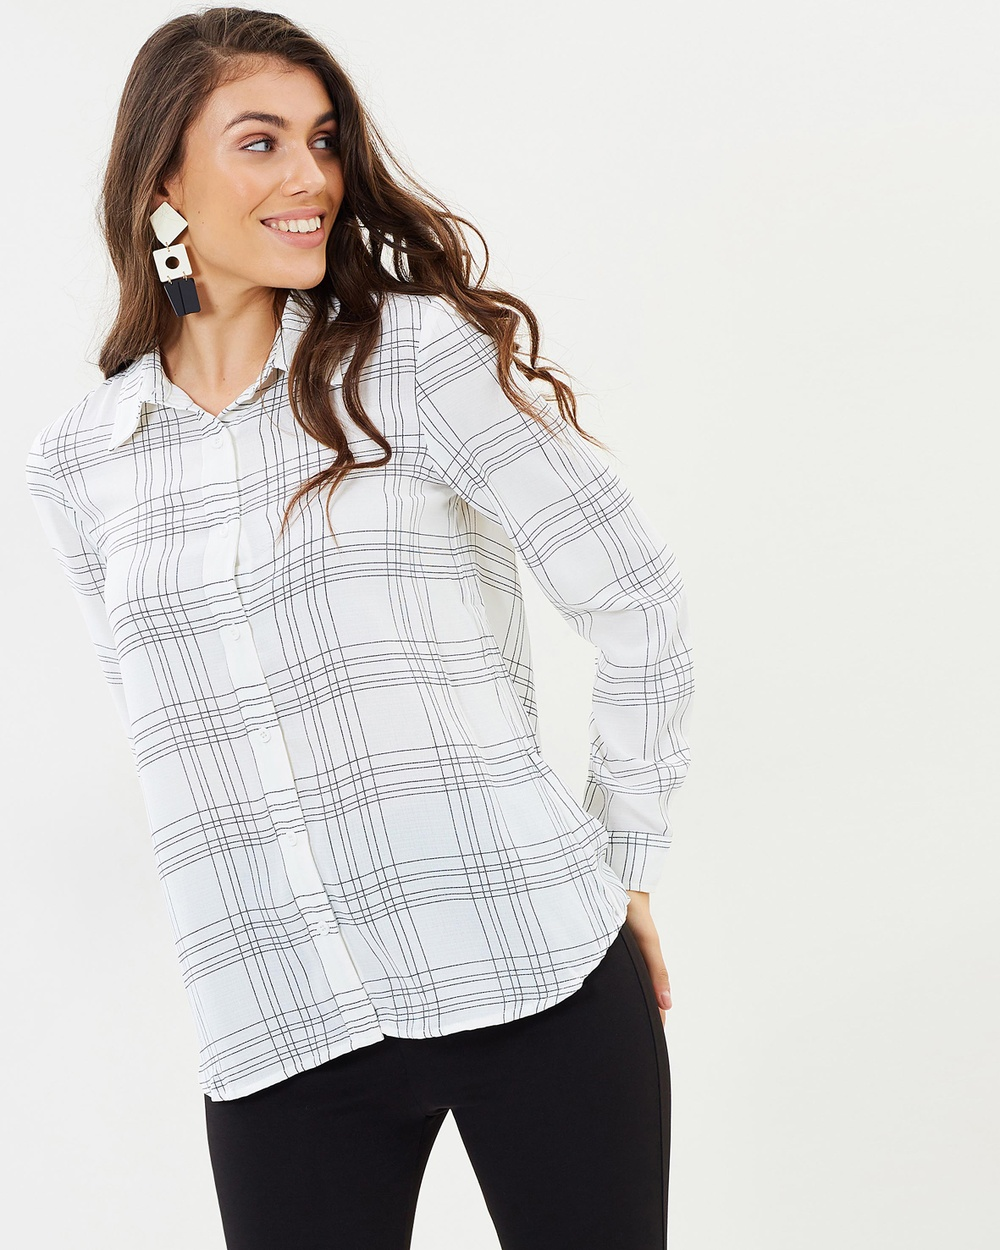 Atmos & Here ICONIC EXCLUSIVE Liana Button Up Shirt Tops White Check ICONIC EXCLUSIVE Liana Button Up Shirt